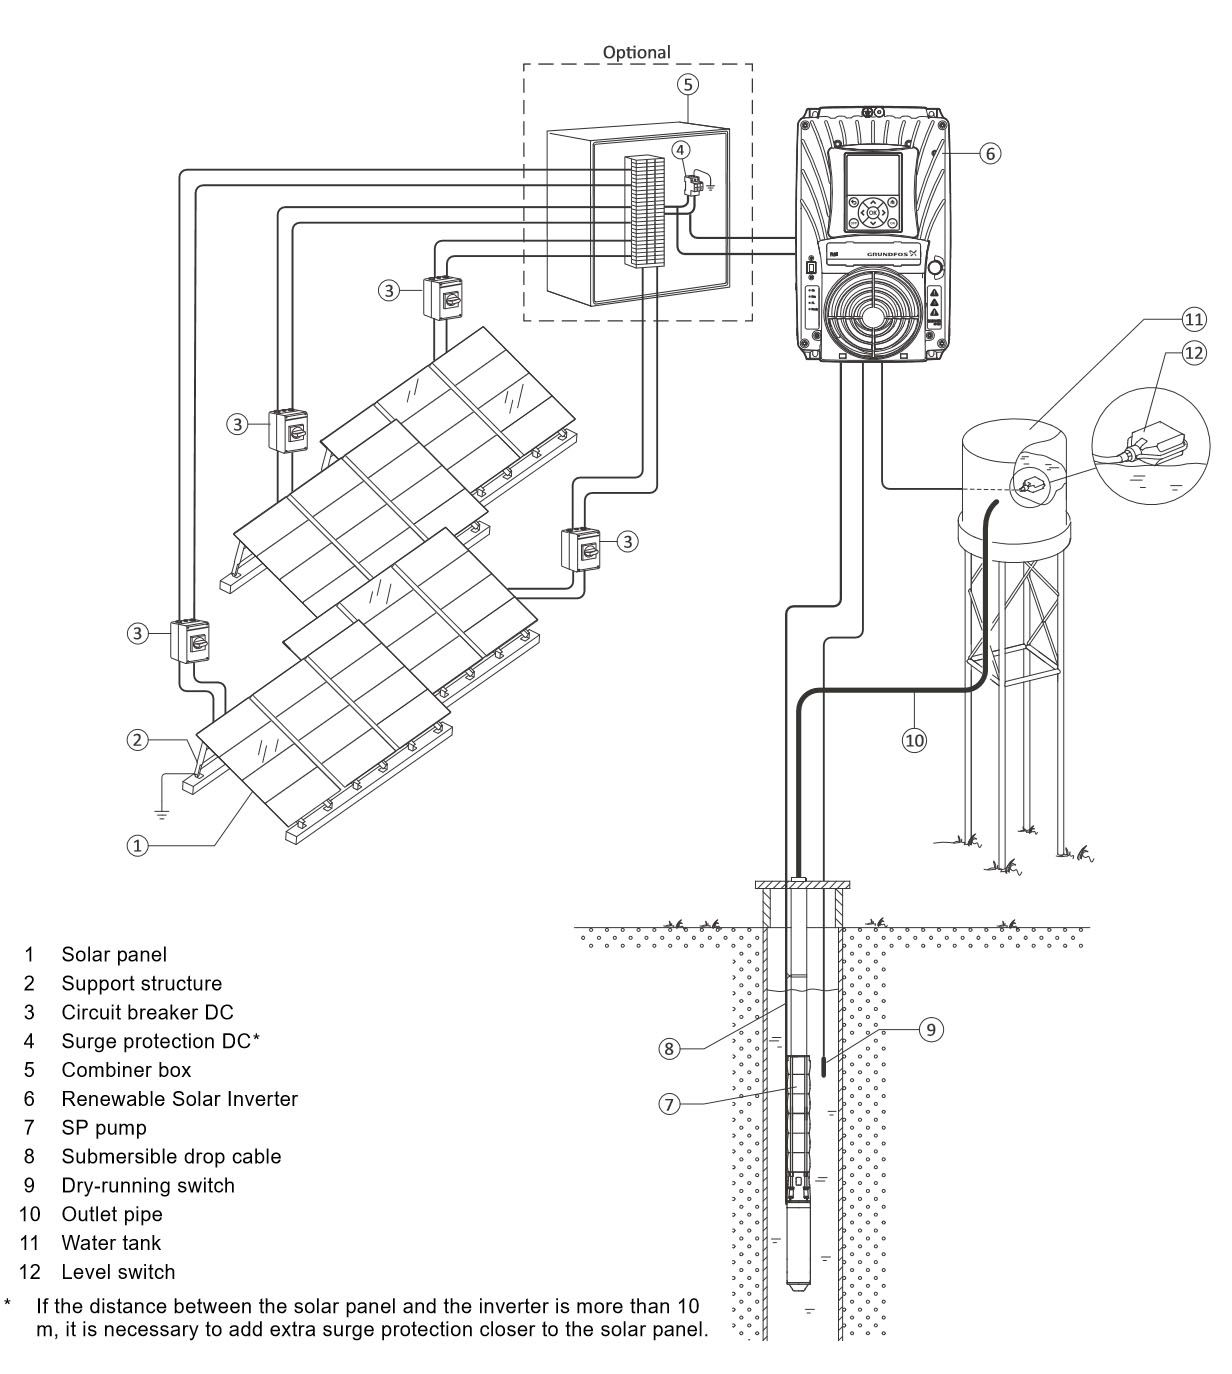 [WRG-4500] Grundfos Solar Panel Wiring Diagram